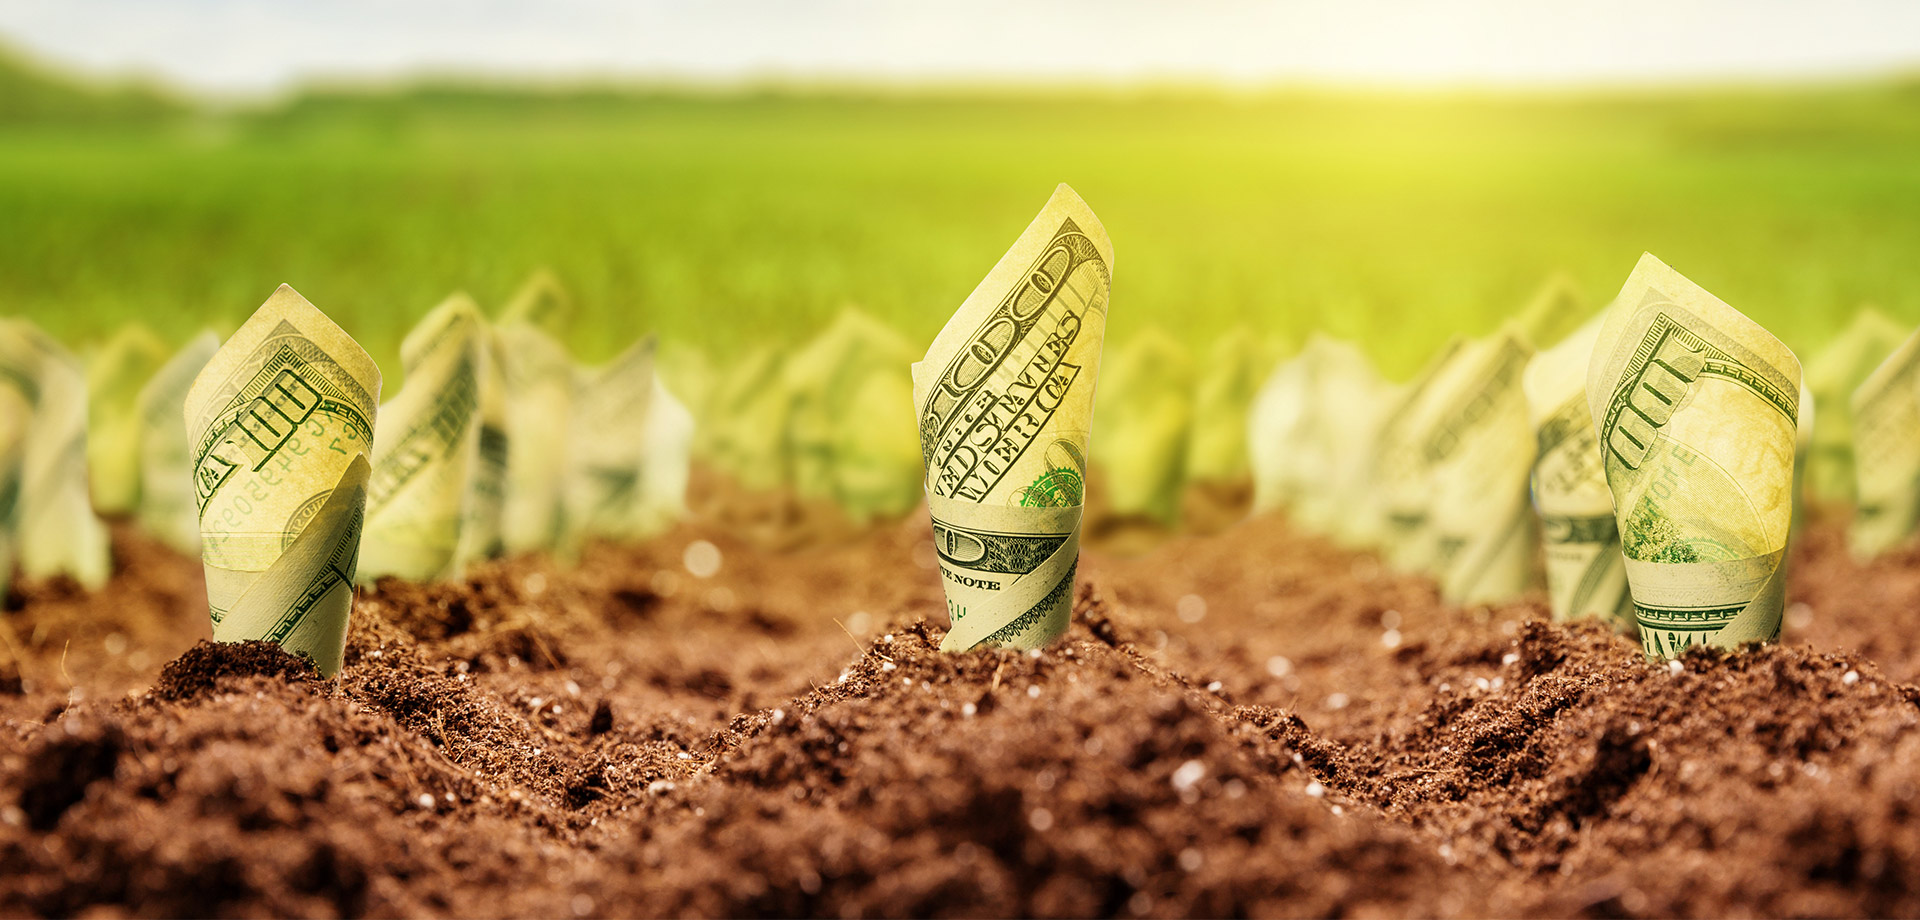 Background - Money Growing in field